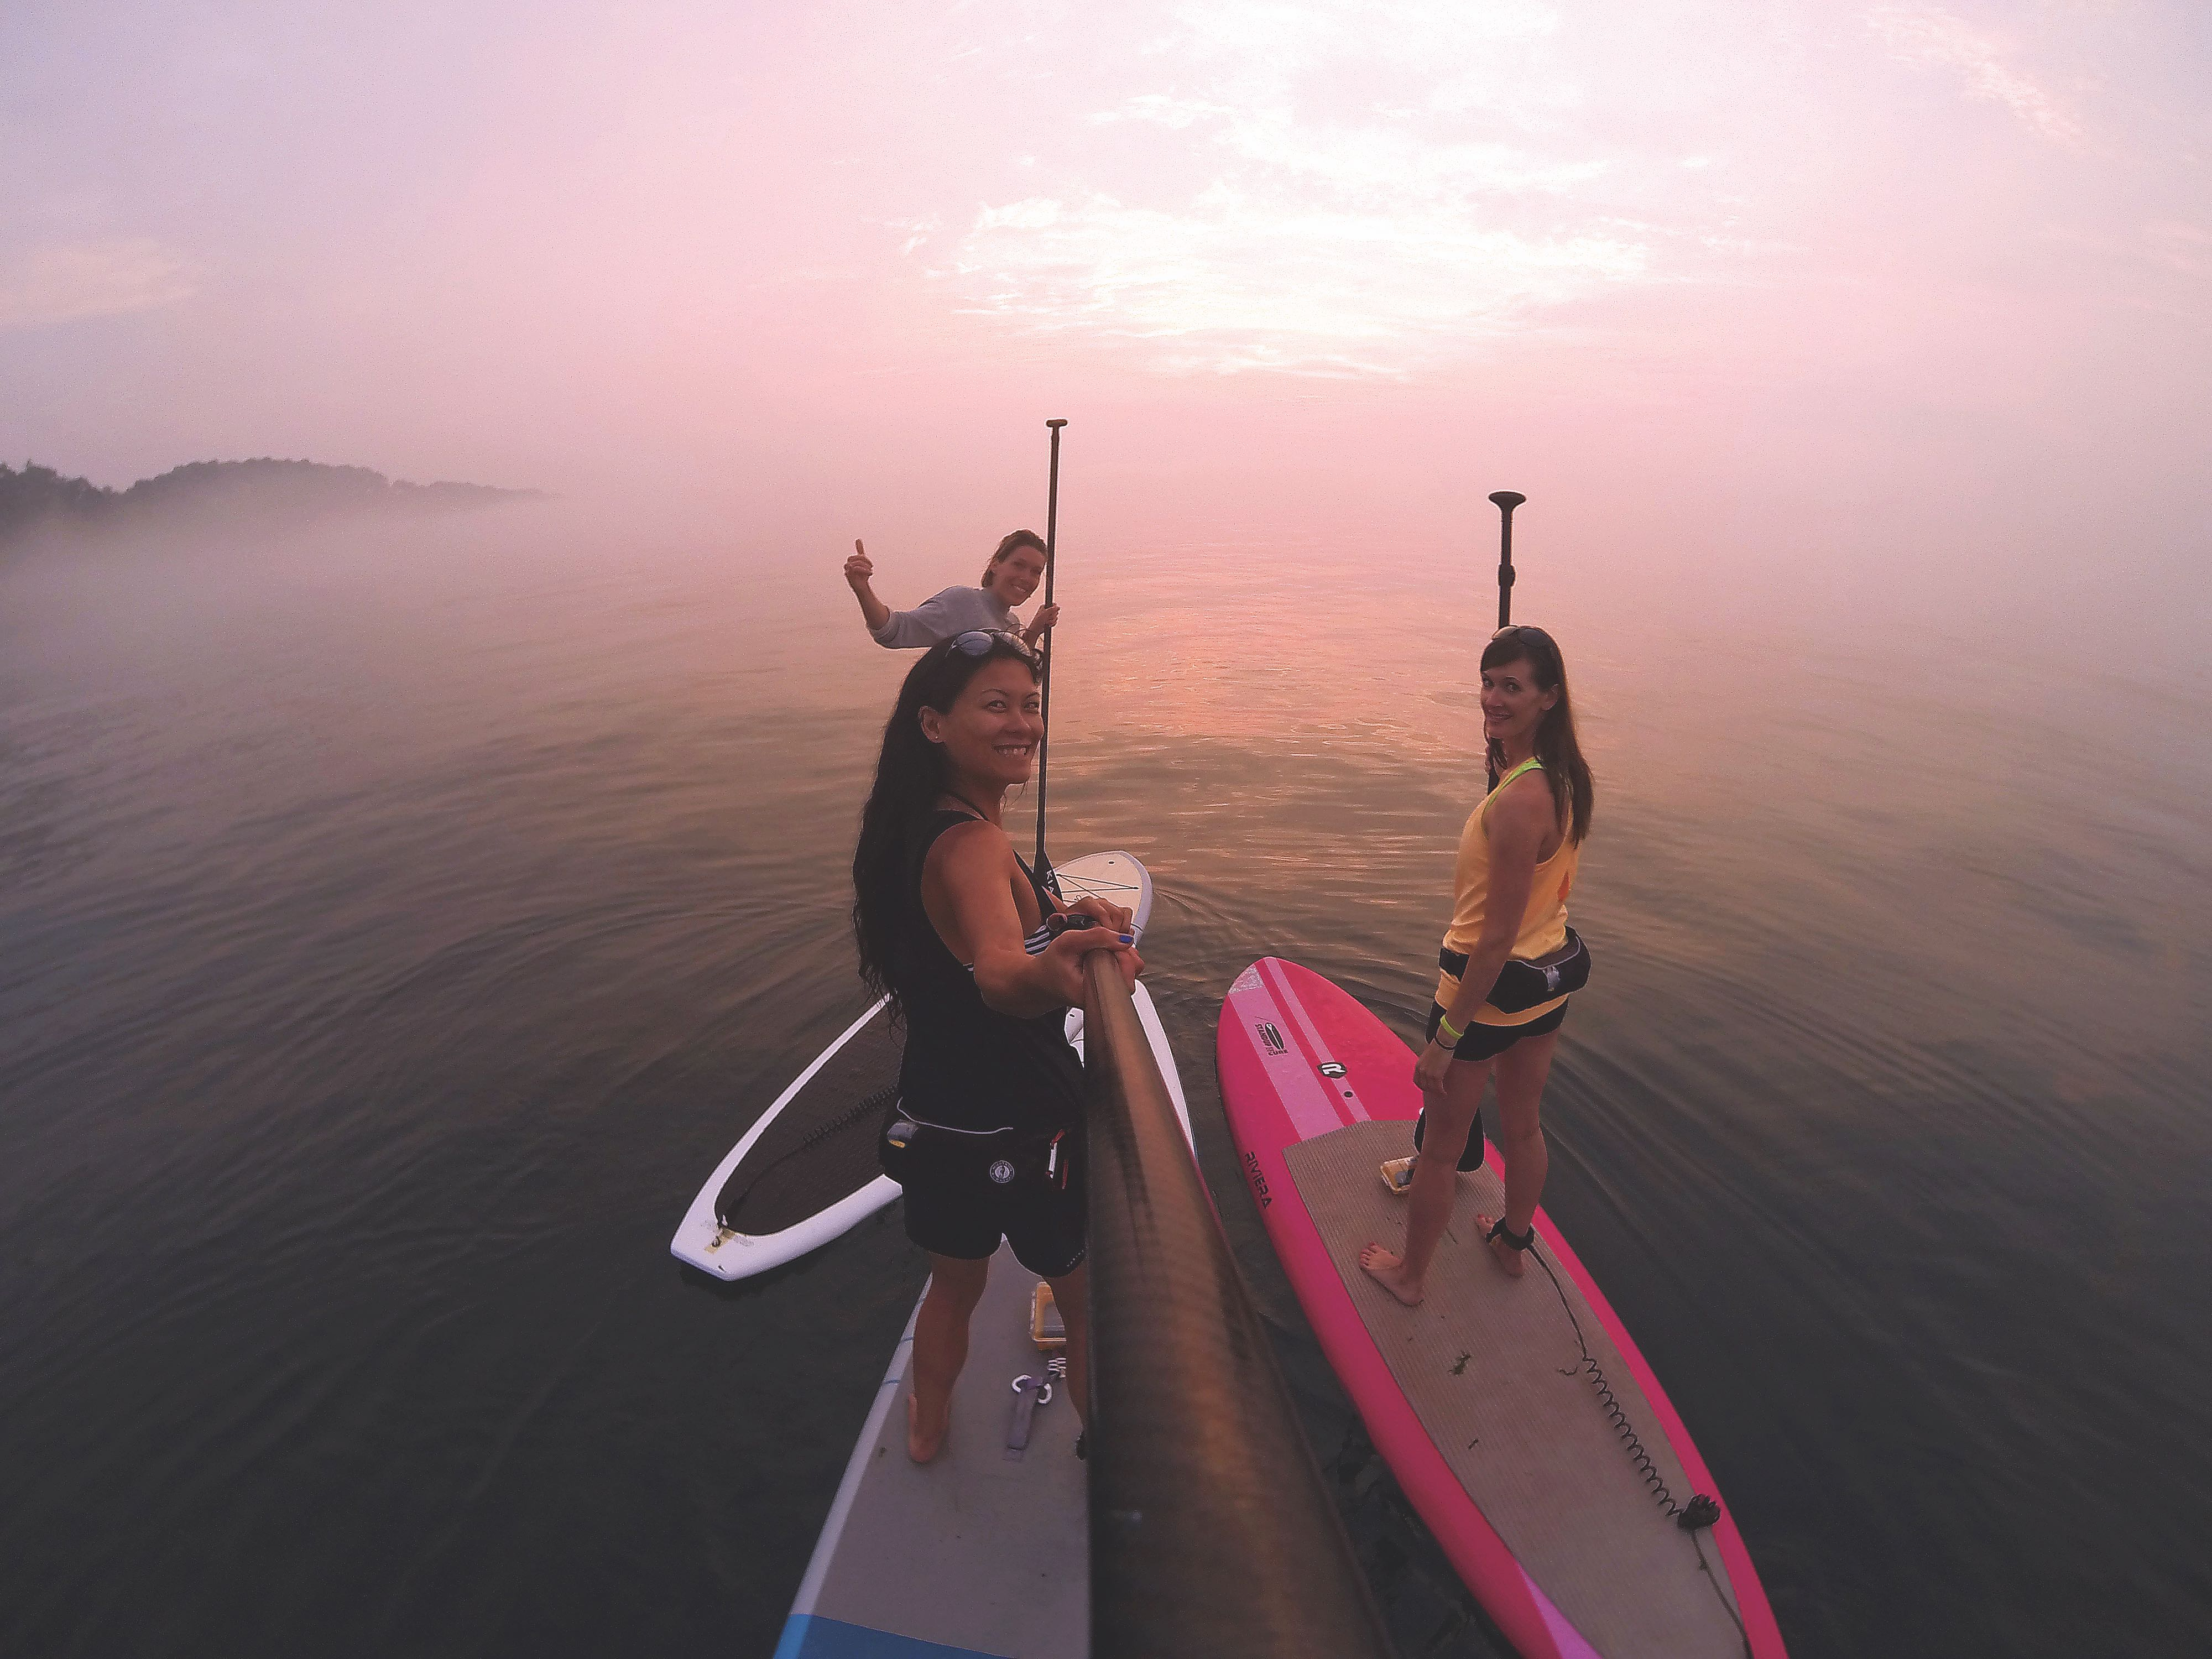 Diana Lee and two women standing on their paddleboards and smiling at the camera with a sunset in the backgroun